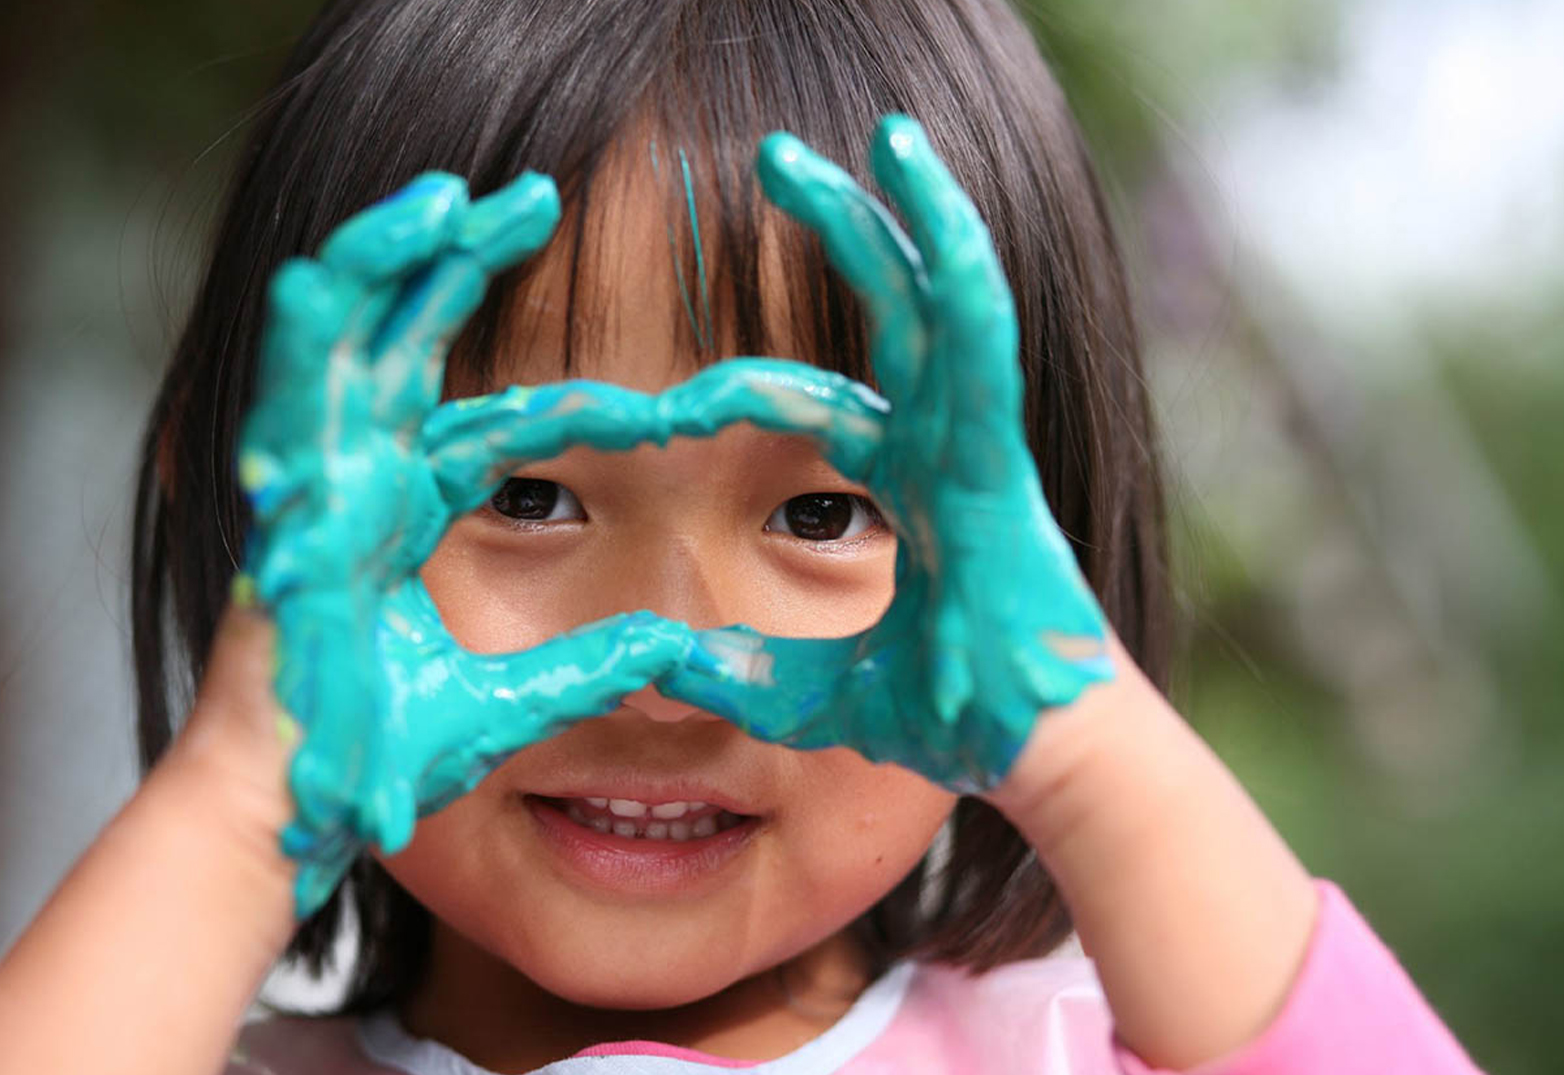 Join the discussion on child labour in the Asia Pacific Region!